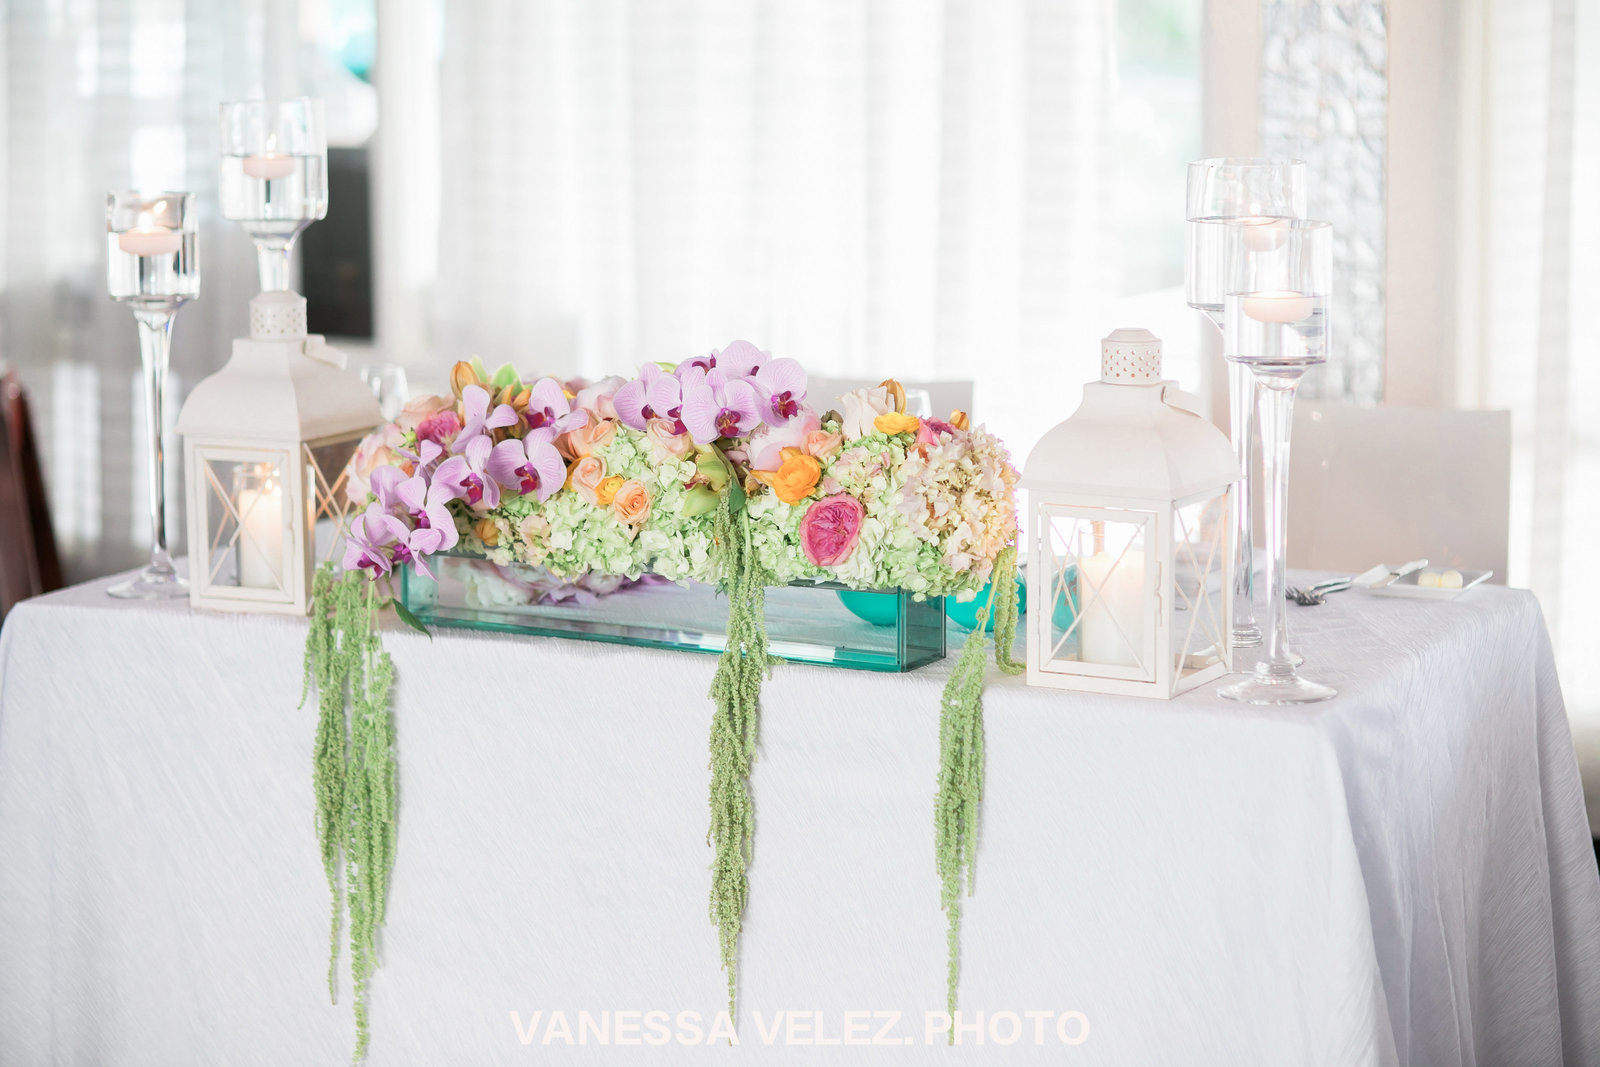 puertoricoweddingdecorator-21